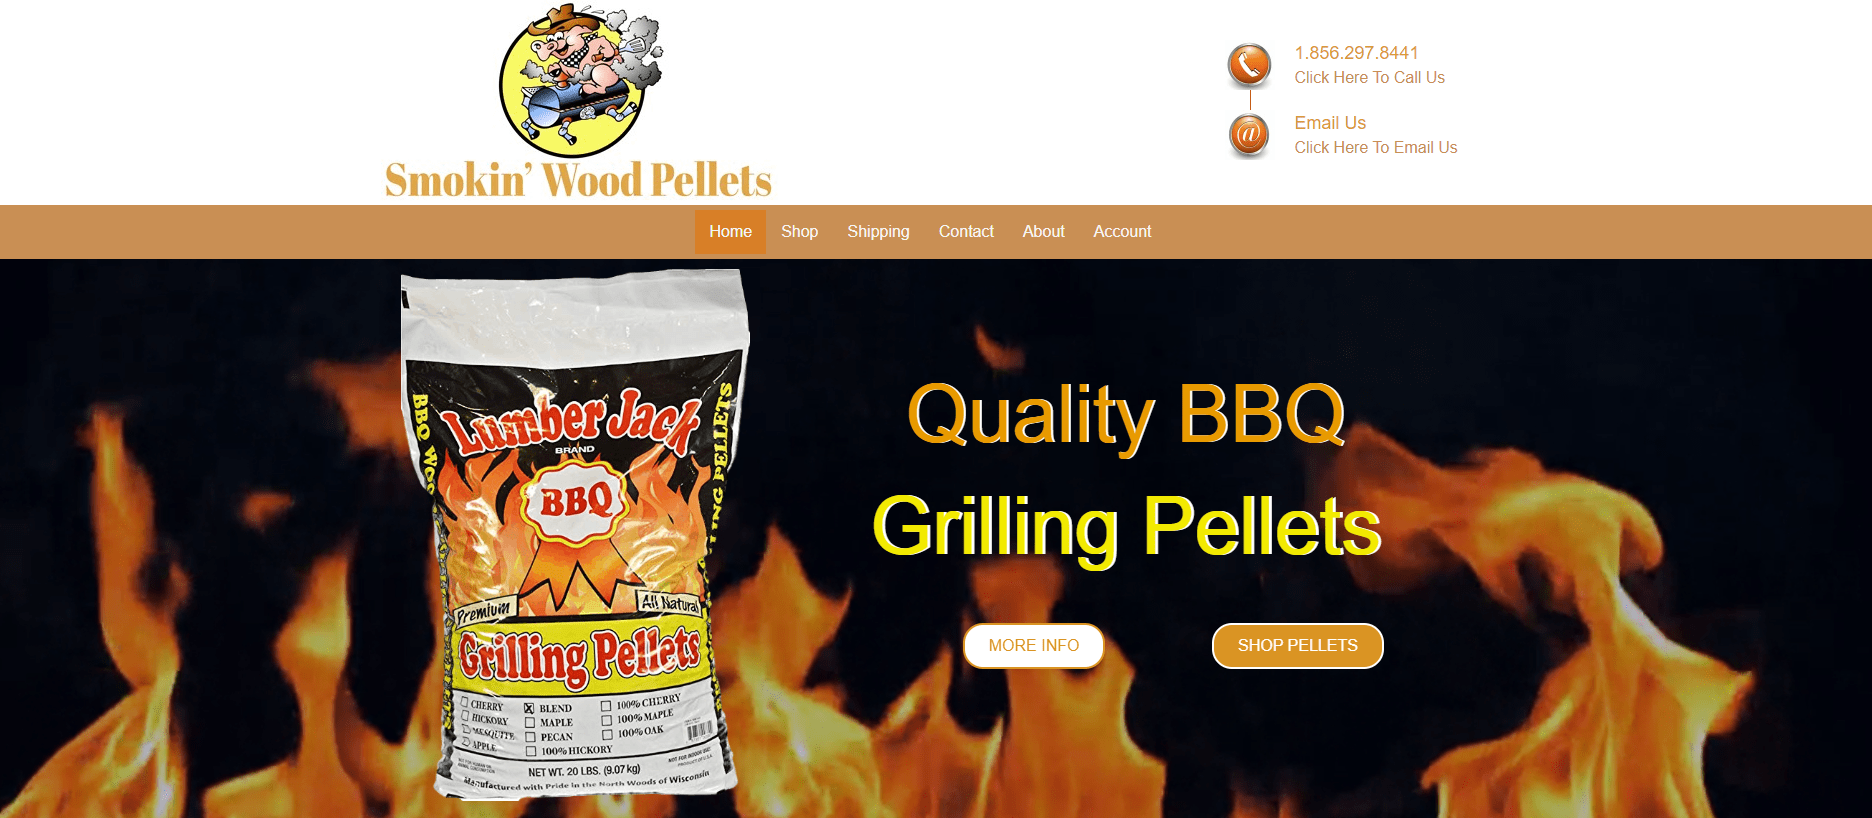 smokin wood pellets